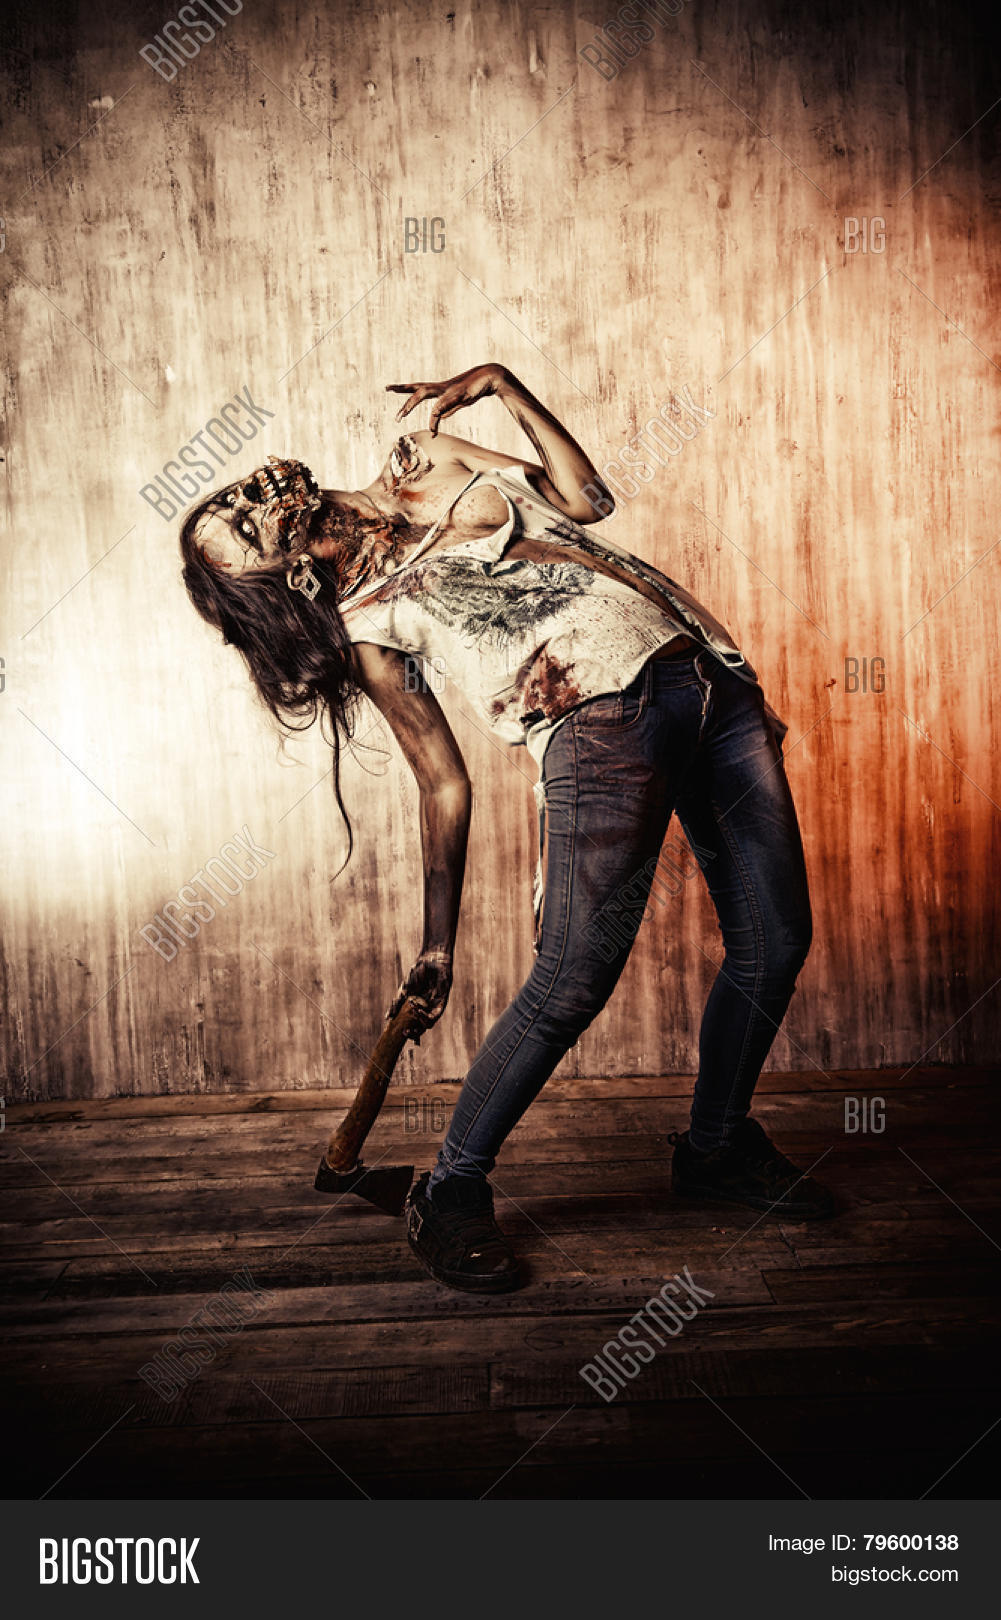 Scary Bloody Zombie Girl Ax. Image & Photo | Bigstock